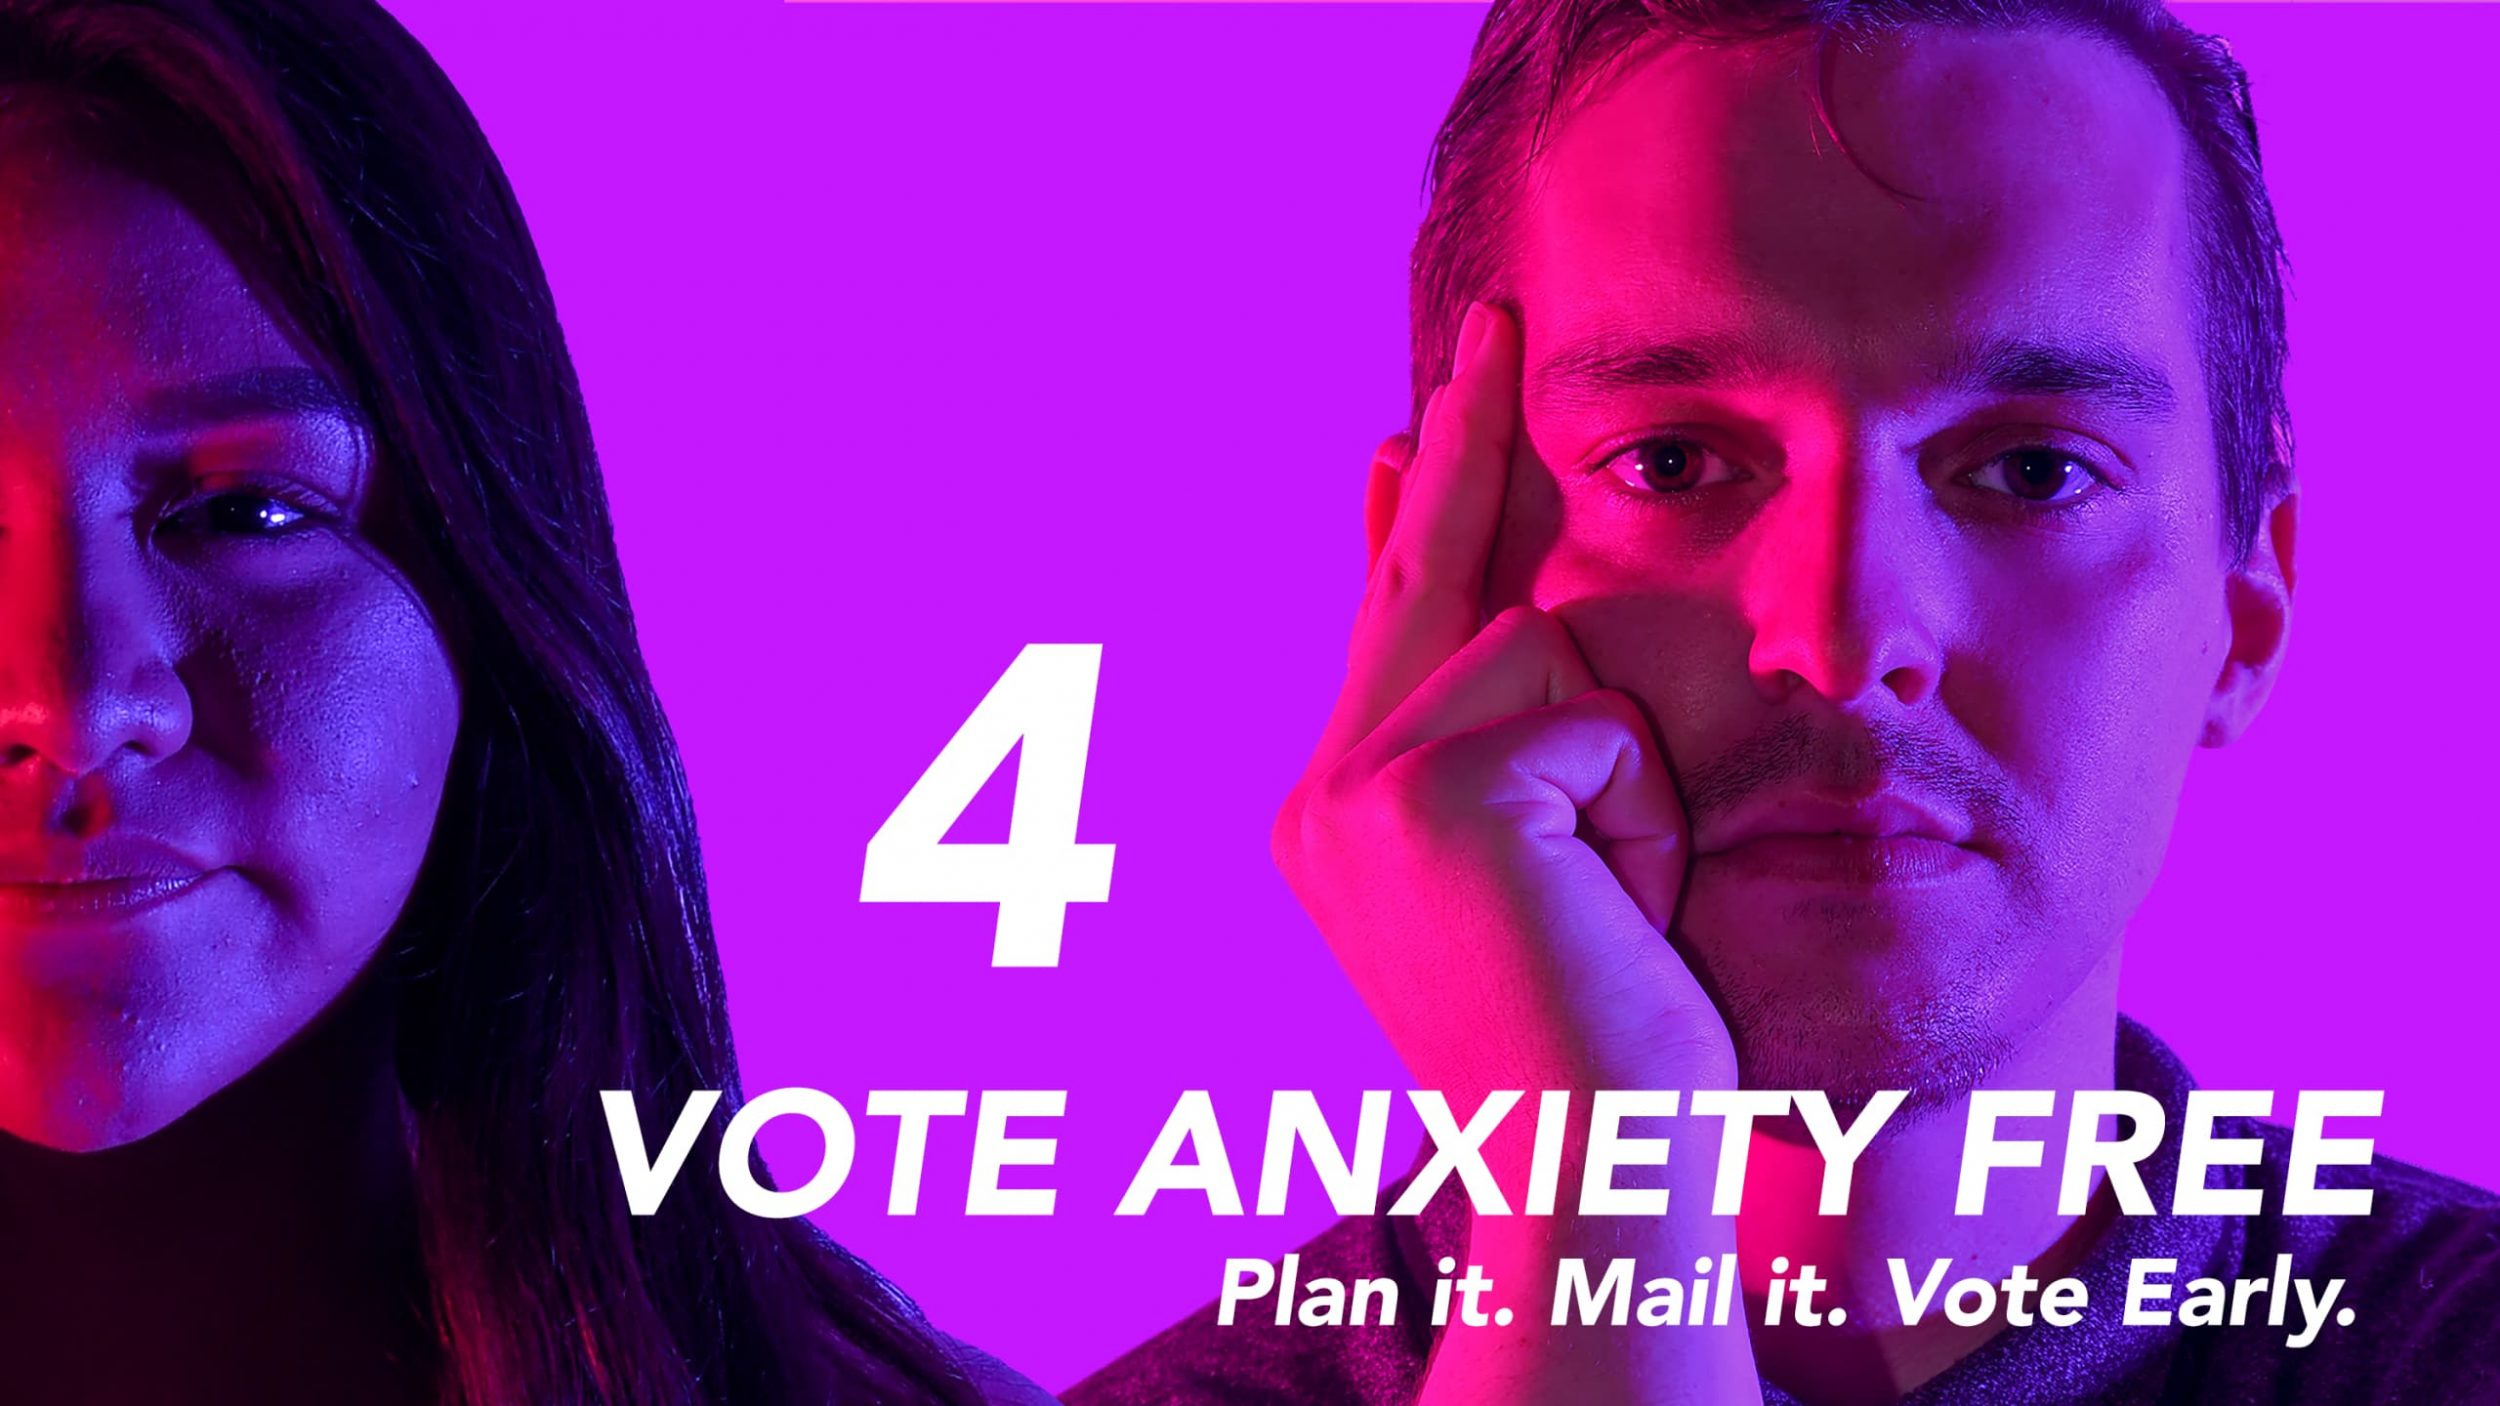 4_Vote-Anxiety-Free-new-website-3.22-